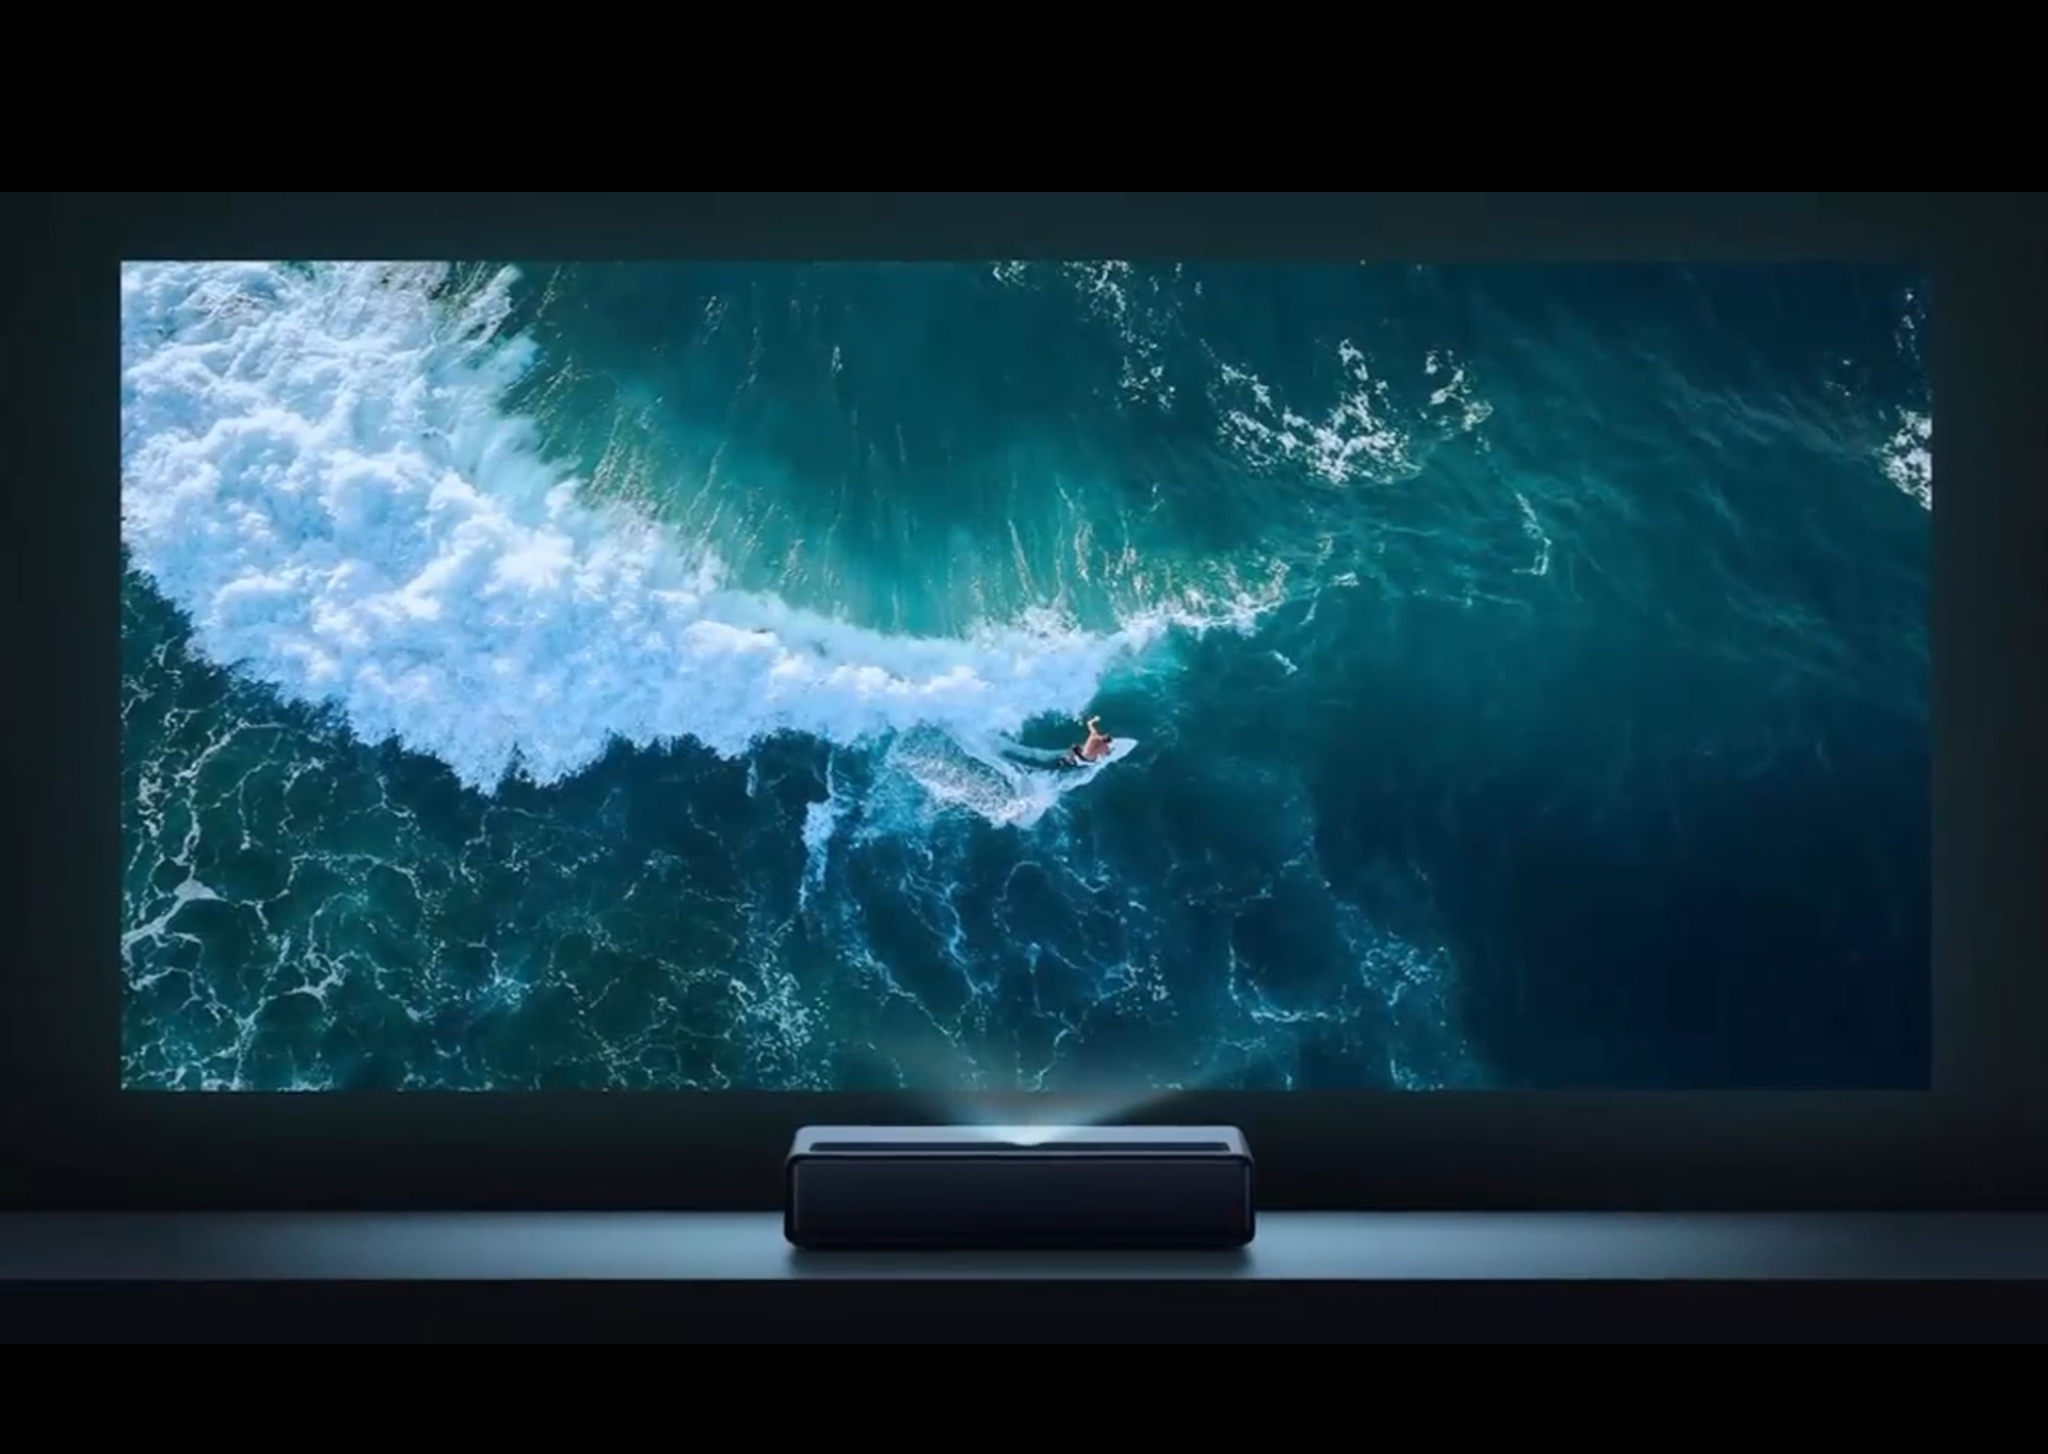 Xiaomi mijia 20K Laser Projector Projection TV Review